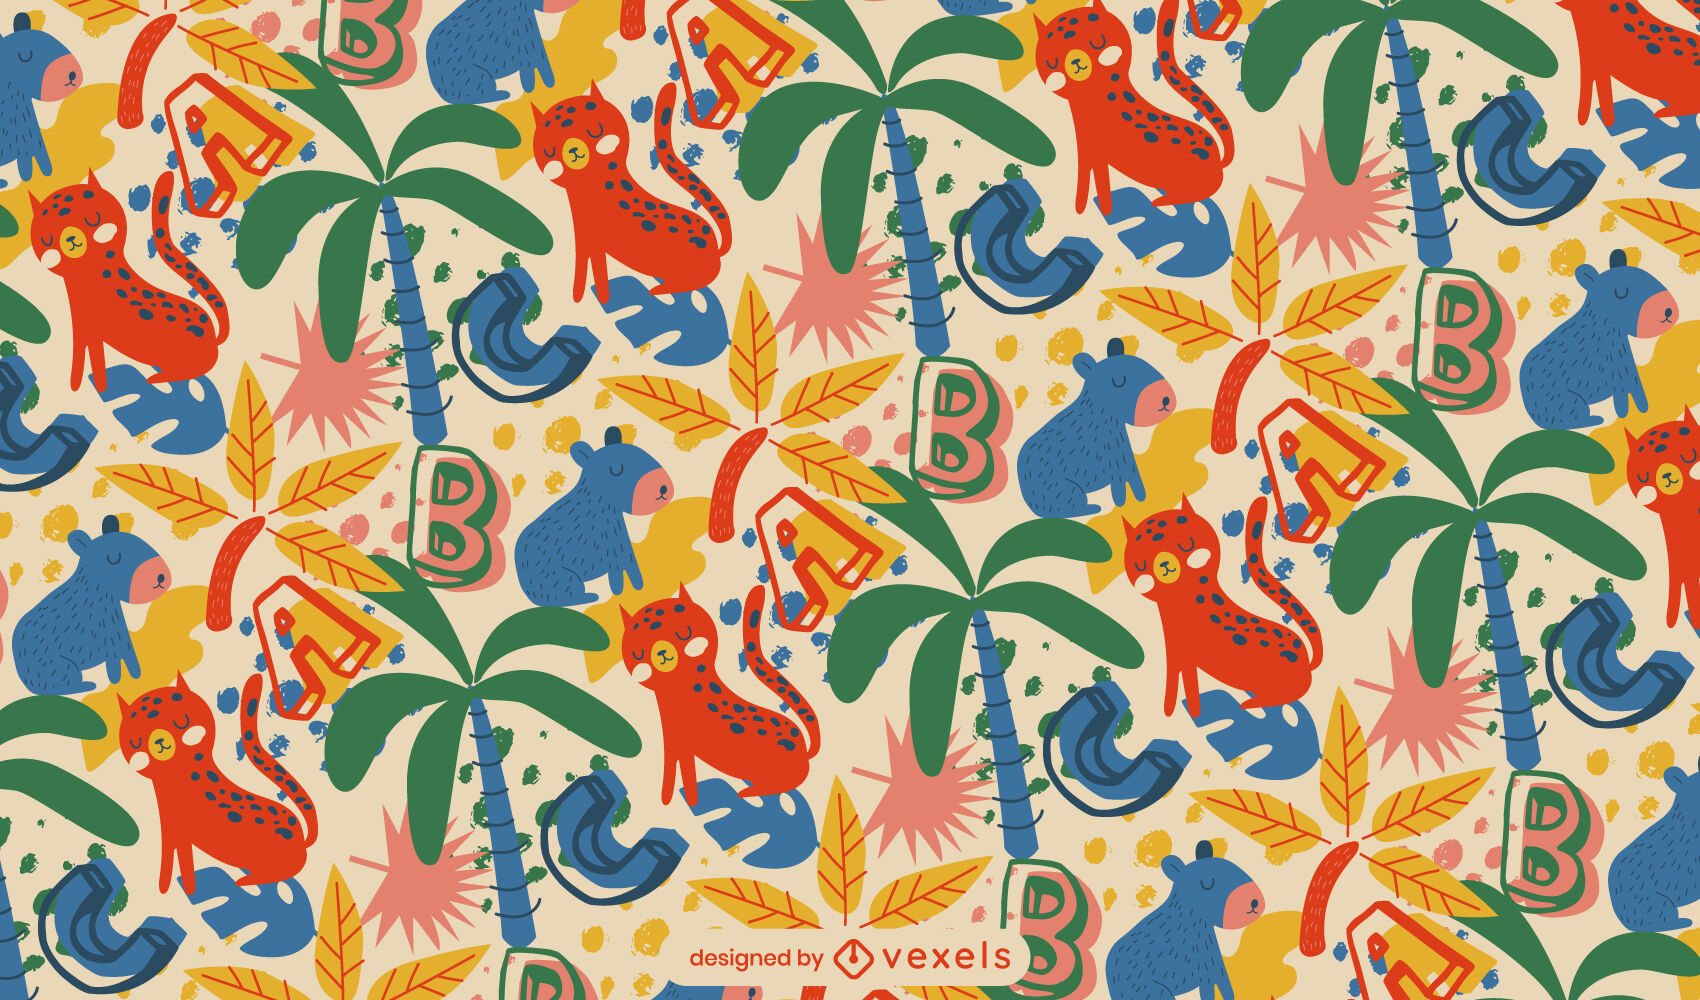 Jungle animals and letters pattern design